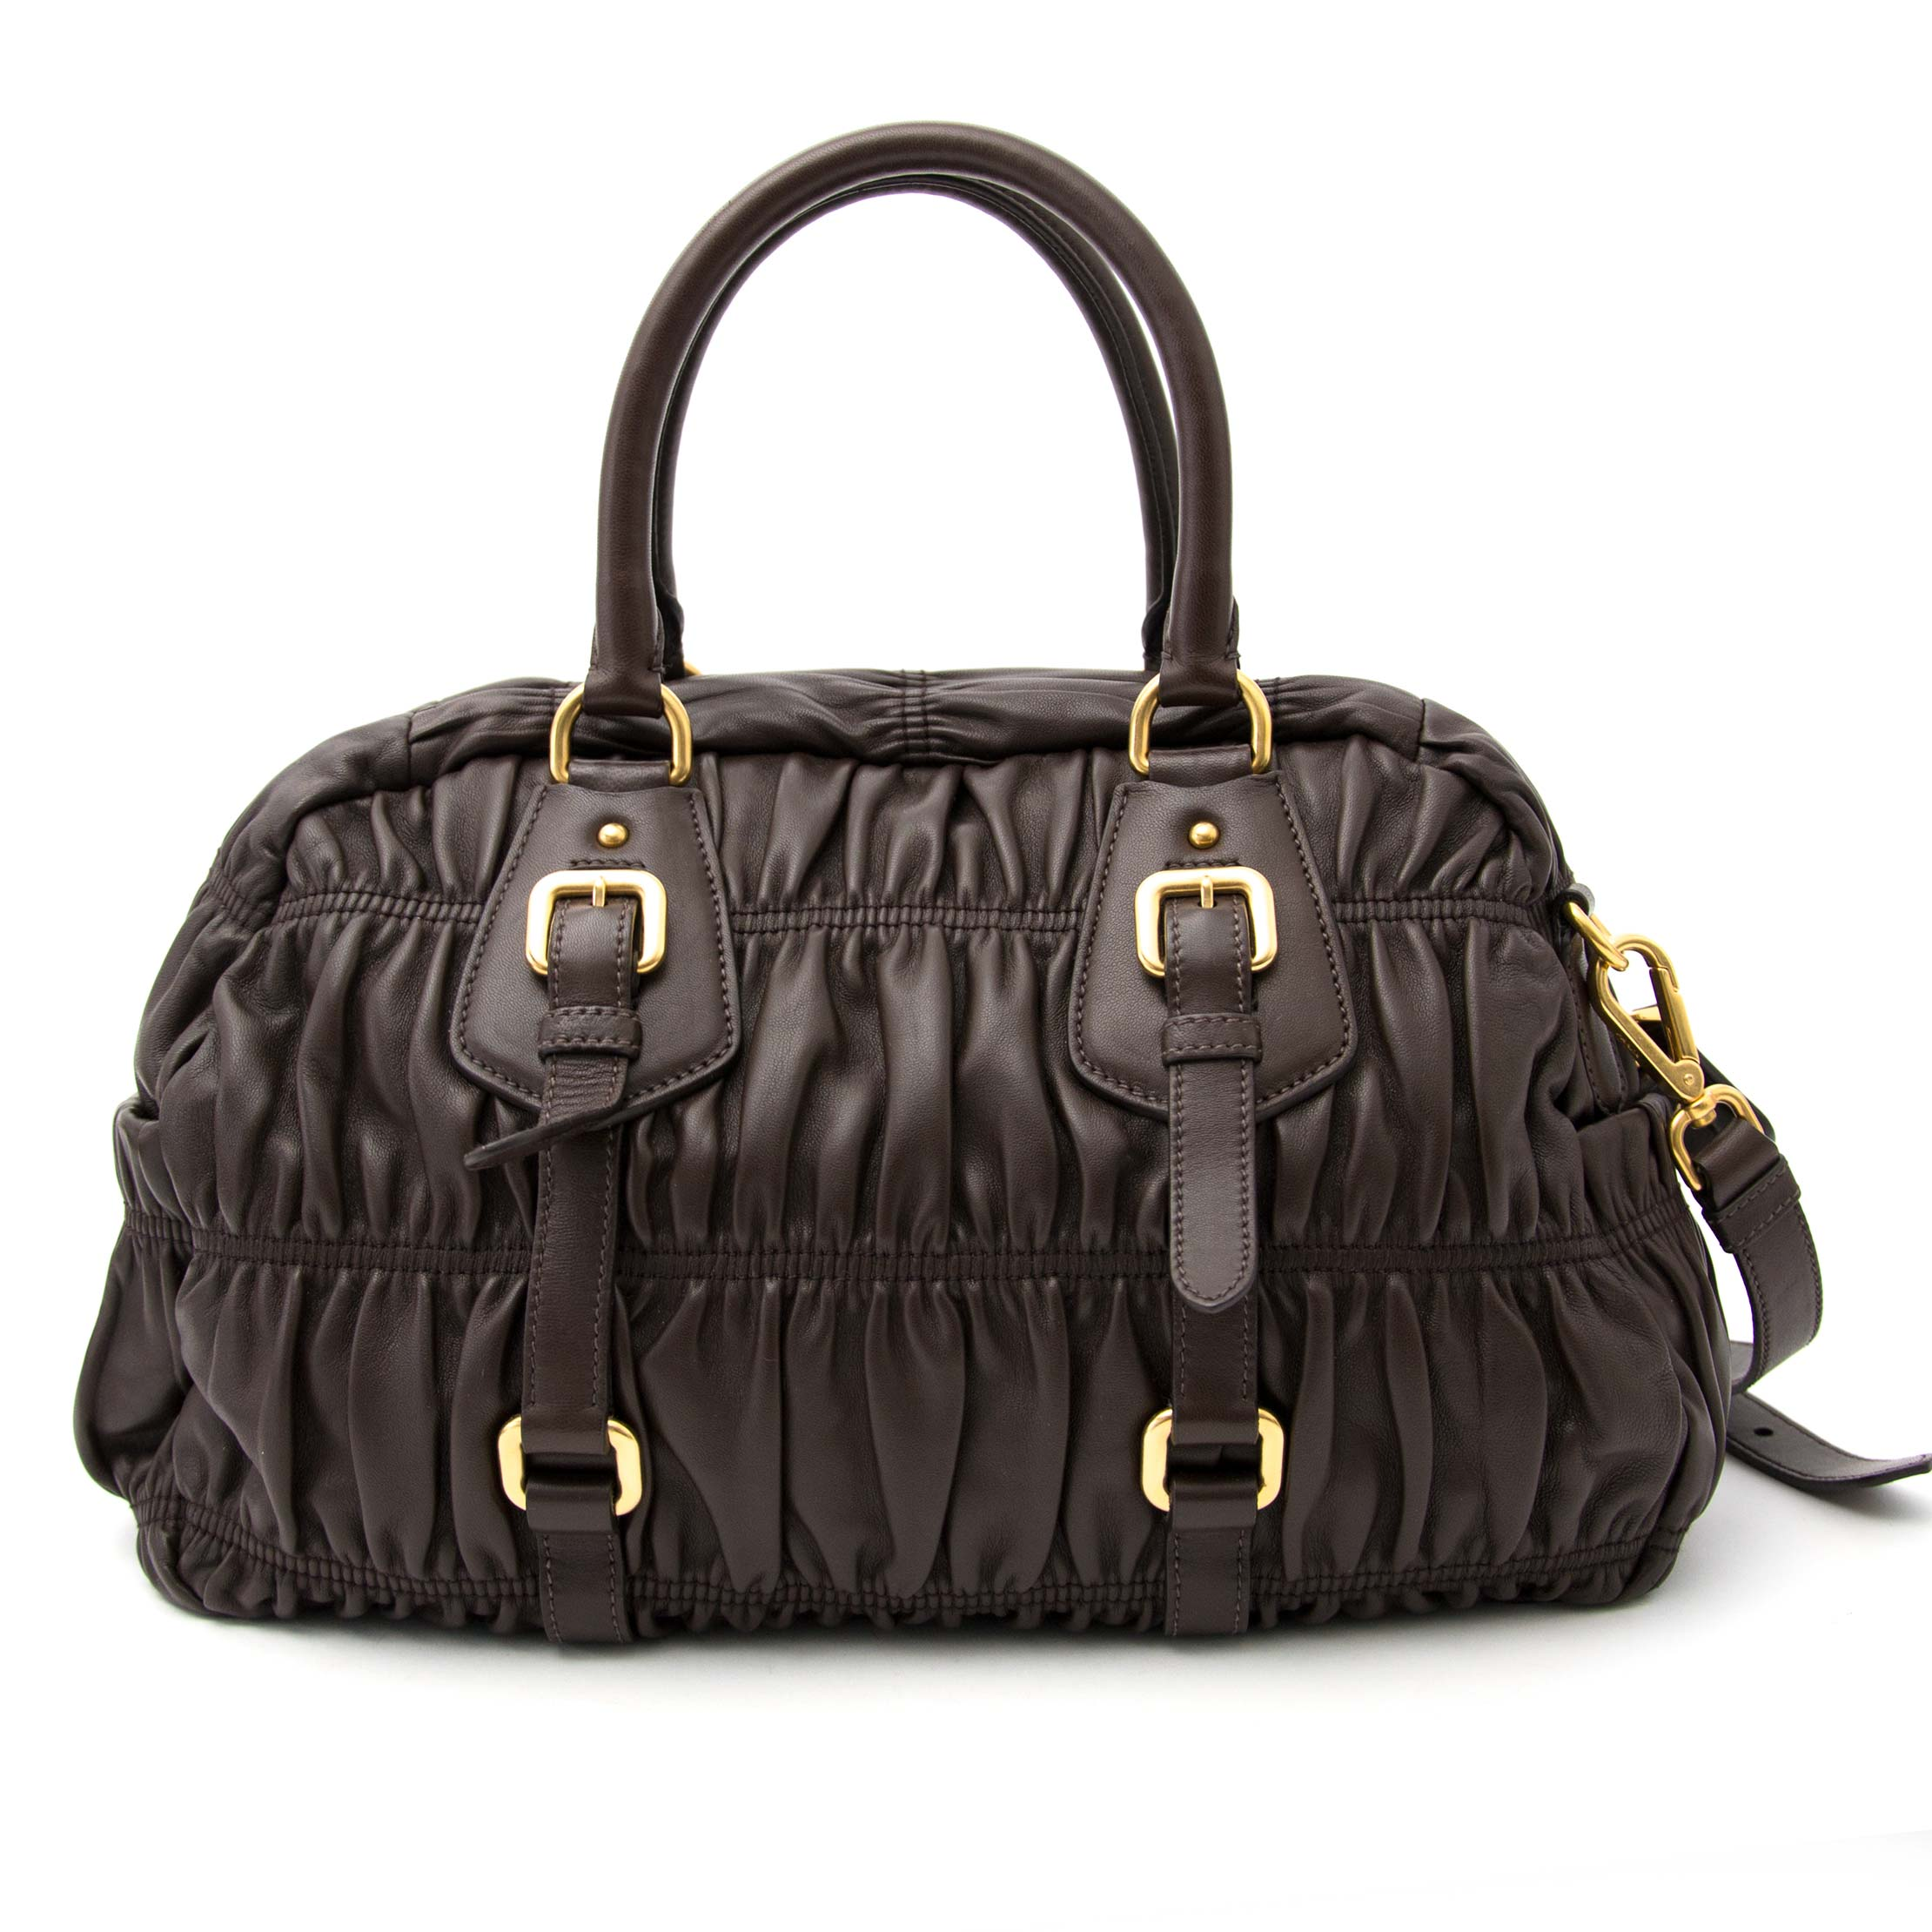 Are you looking for an authentic Prada Brown Matelasse Leather Bag?